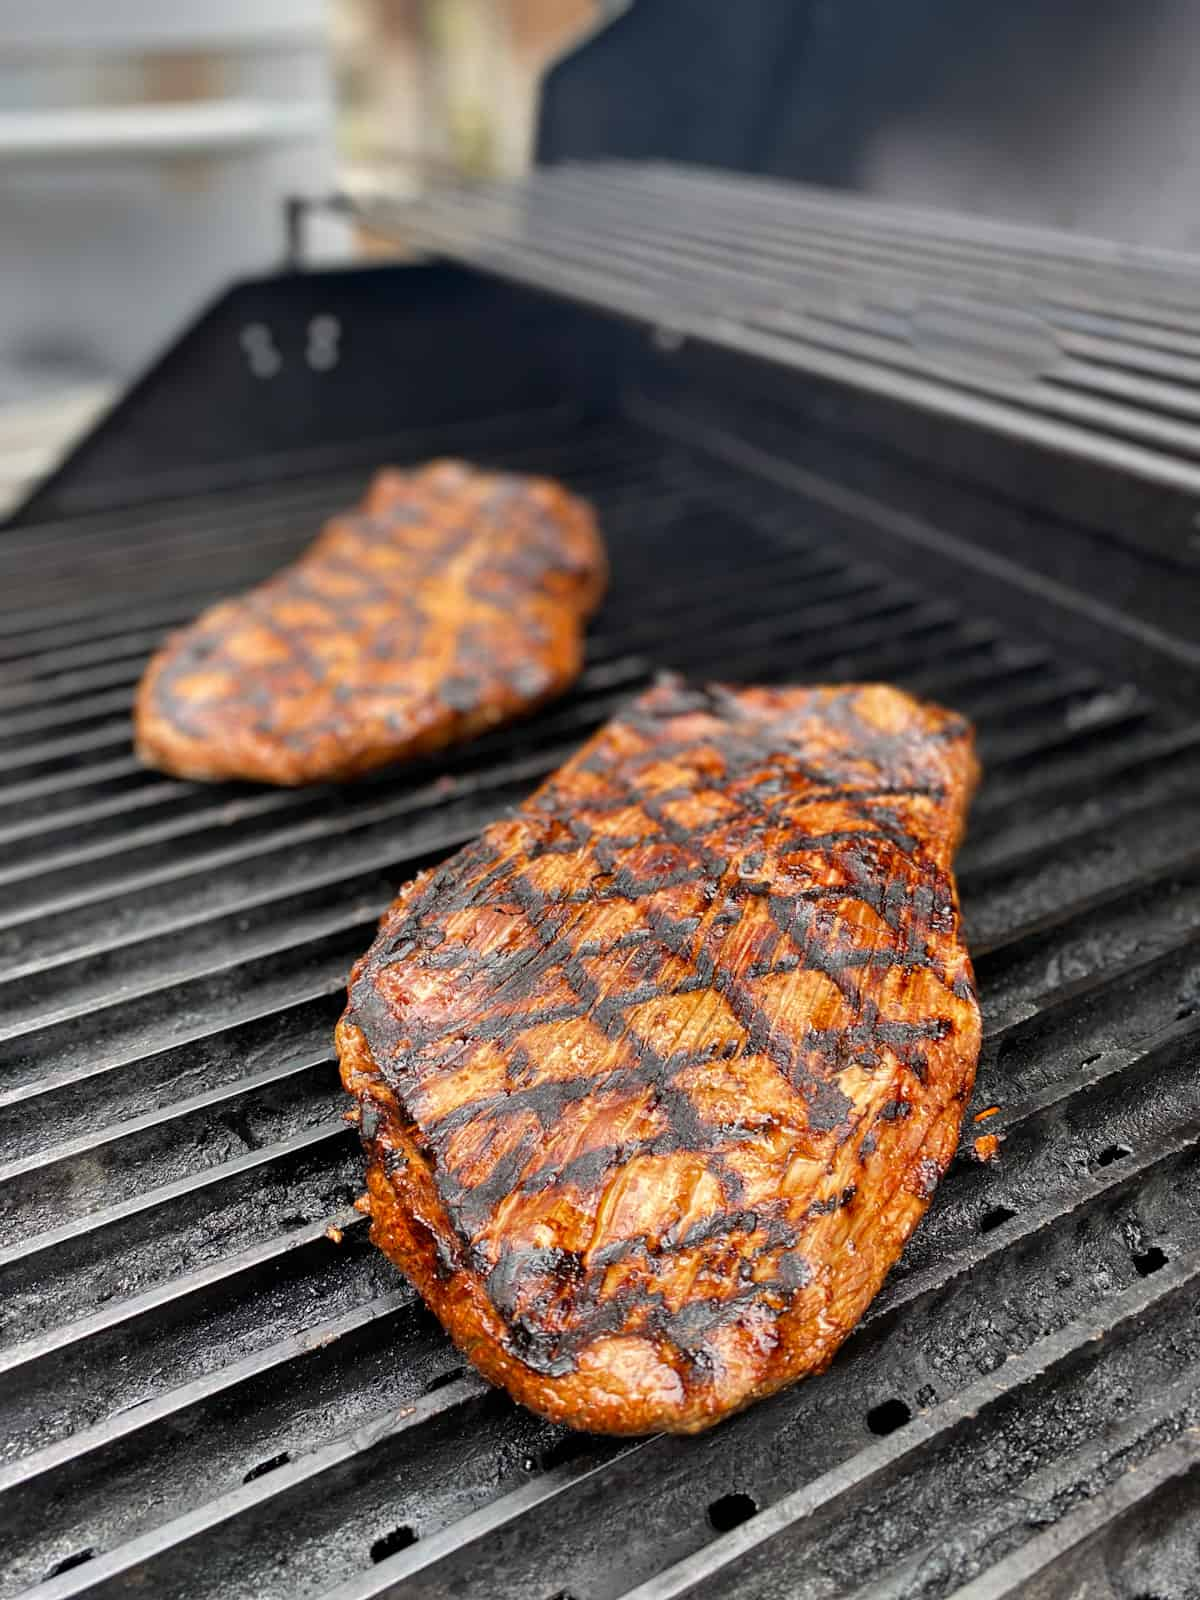 Flank steaks with grilled char lines.